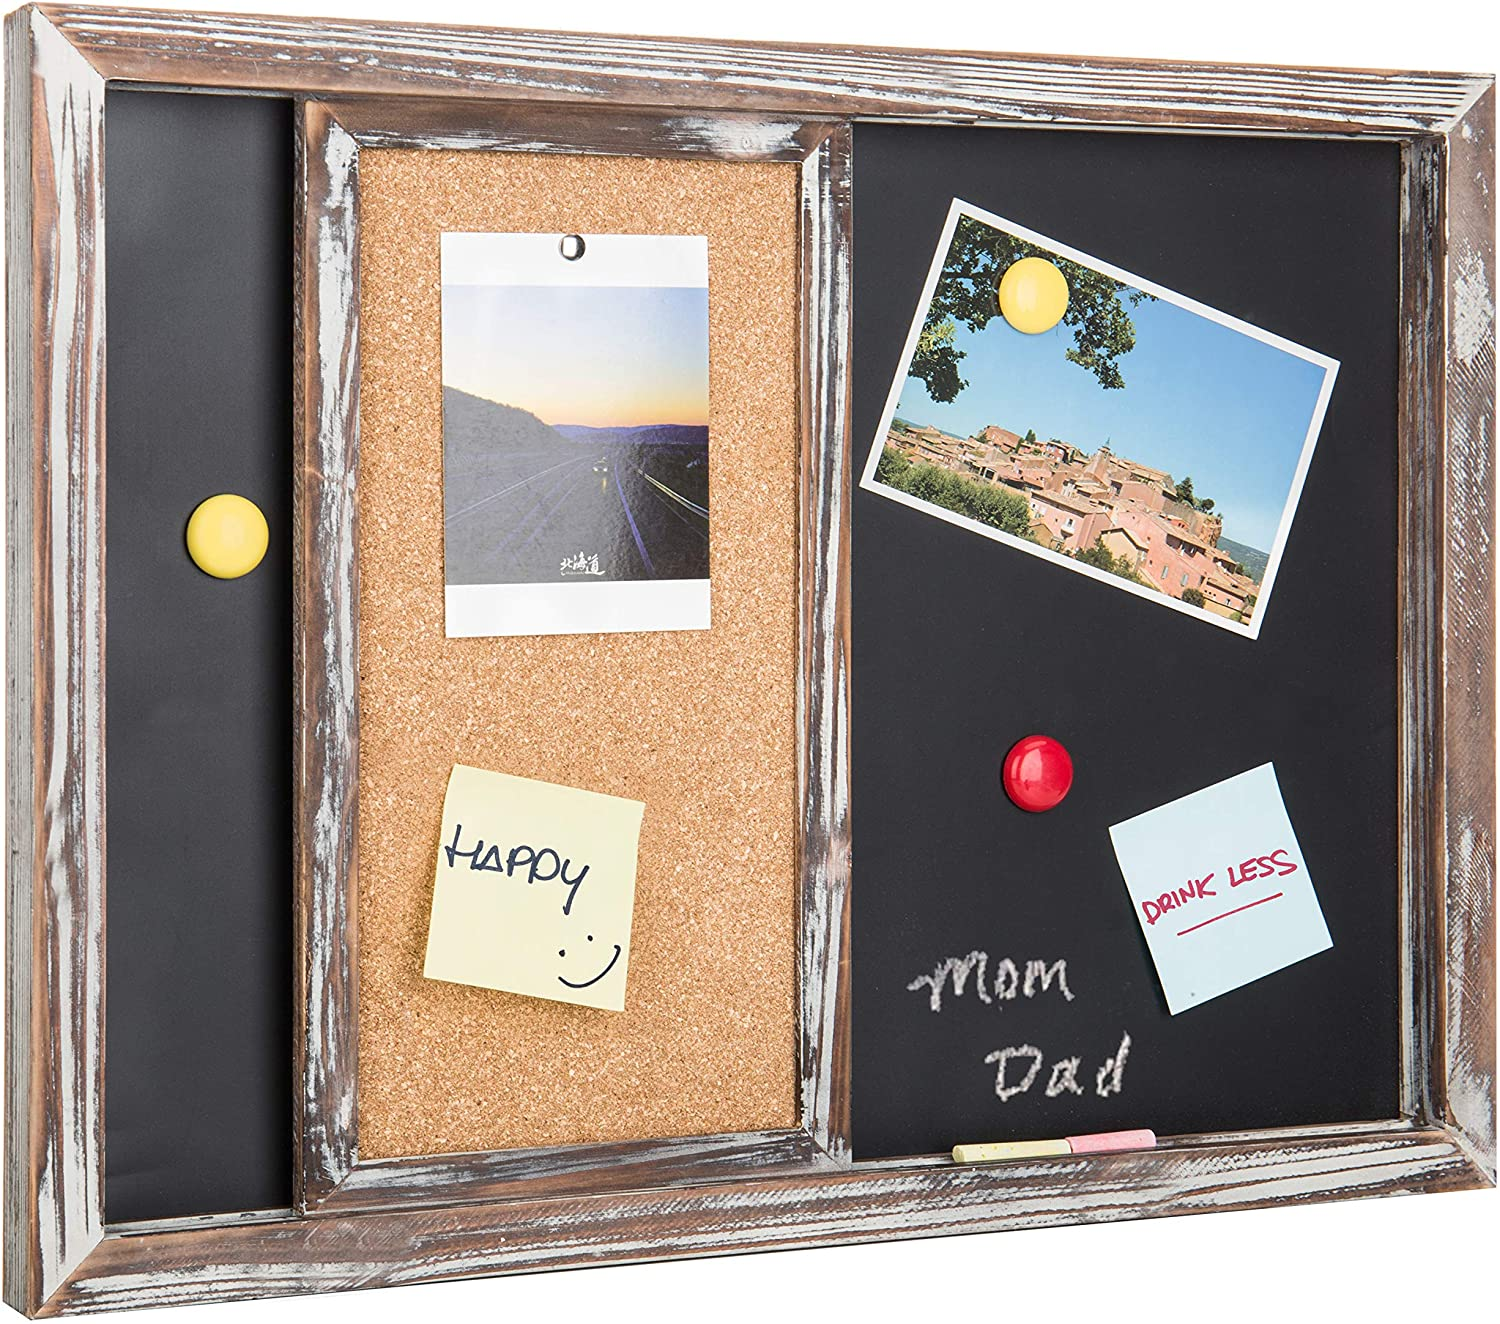 Mygift Rustic Gray Wood Wall Mounted Magnetic Chalkboard Sliding Cork Board Amazon Co Uk Office Products